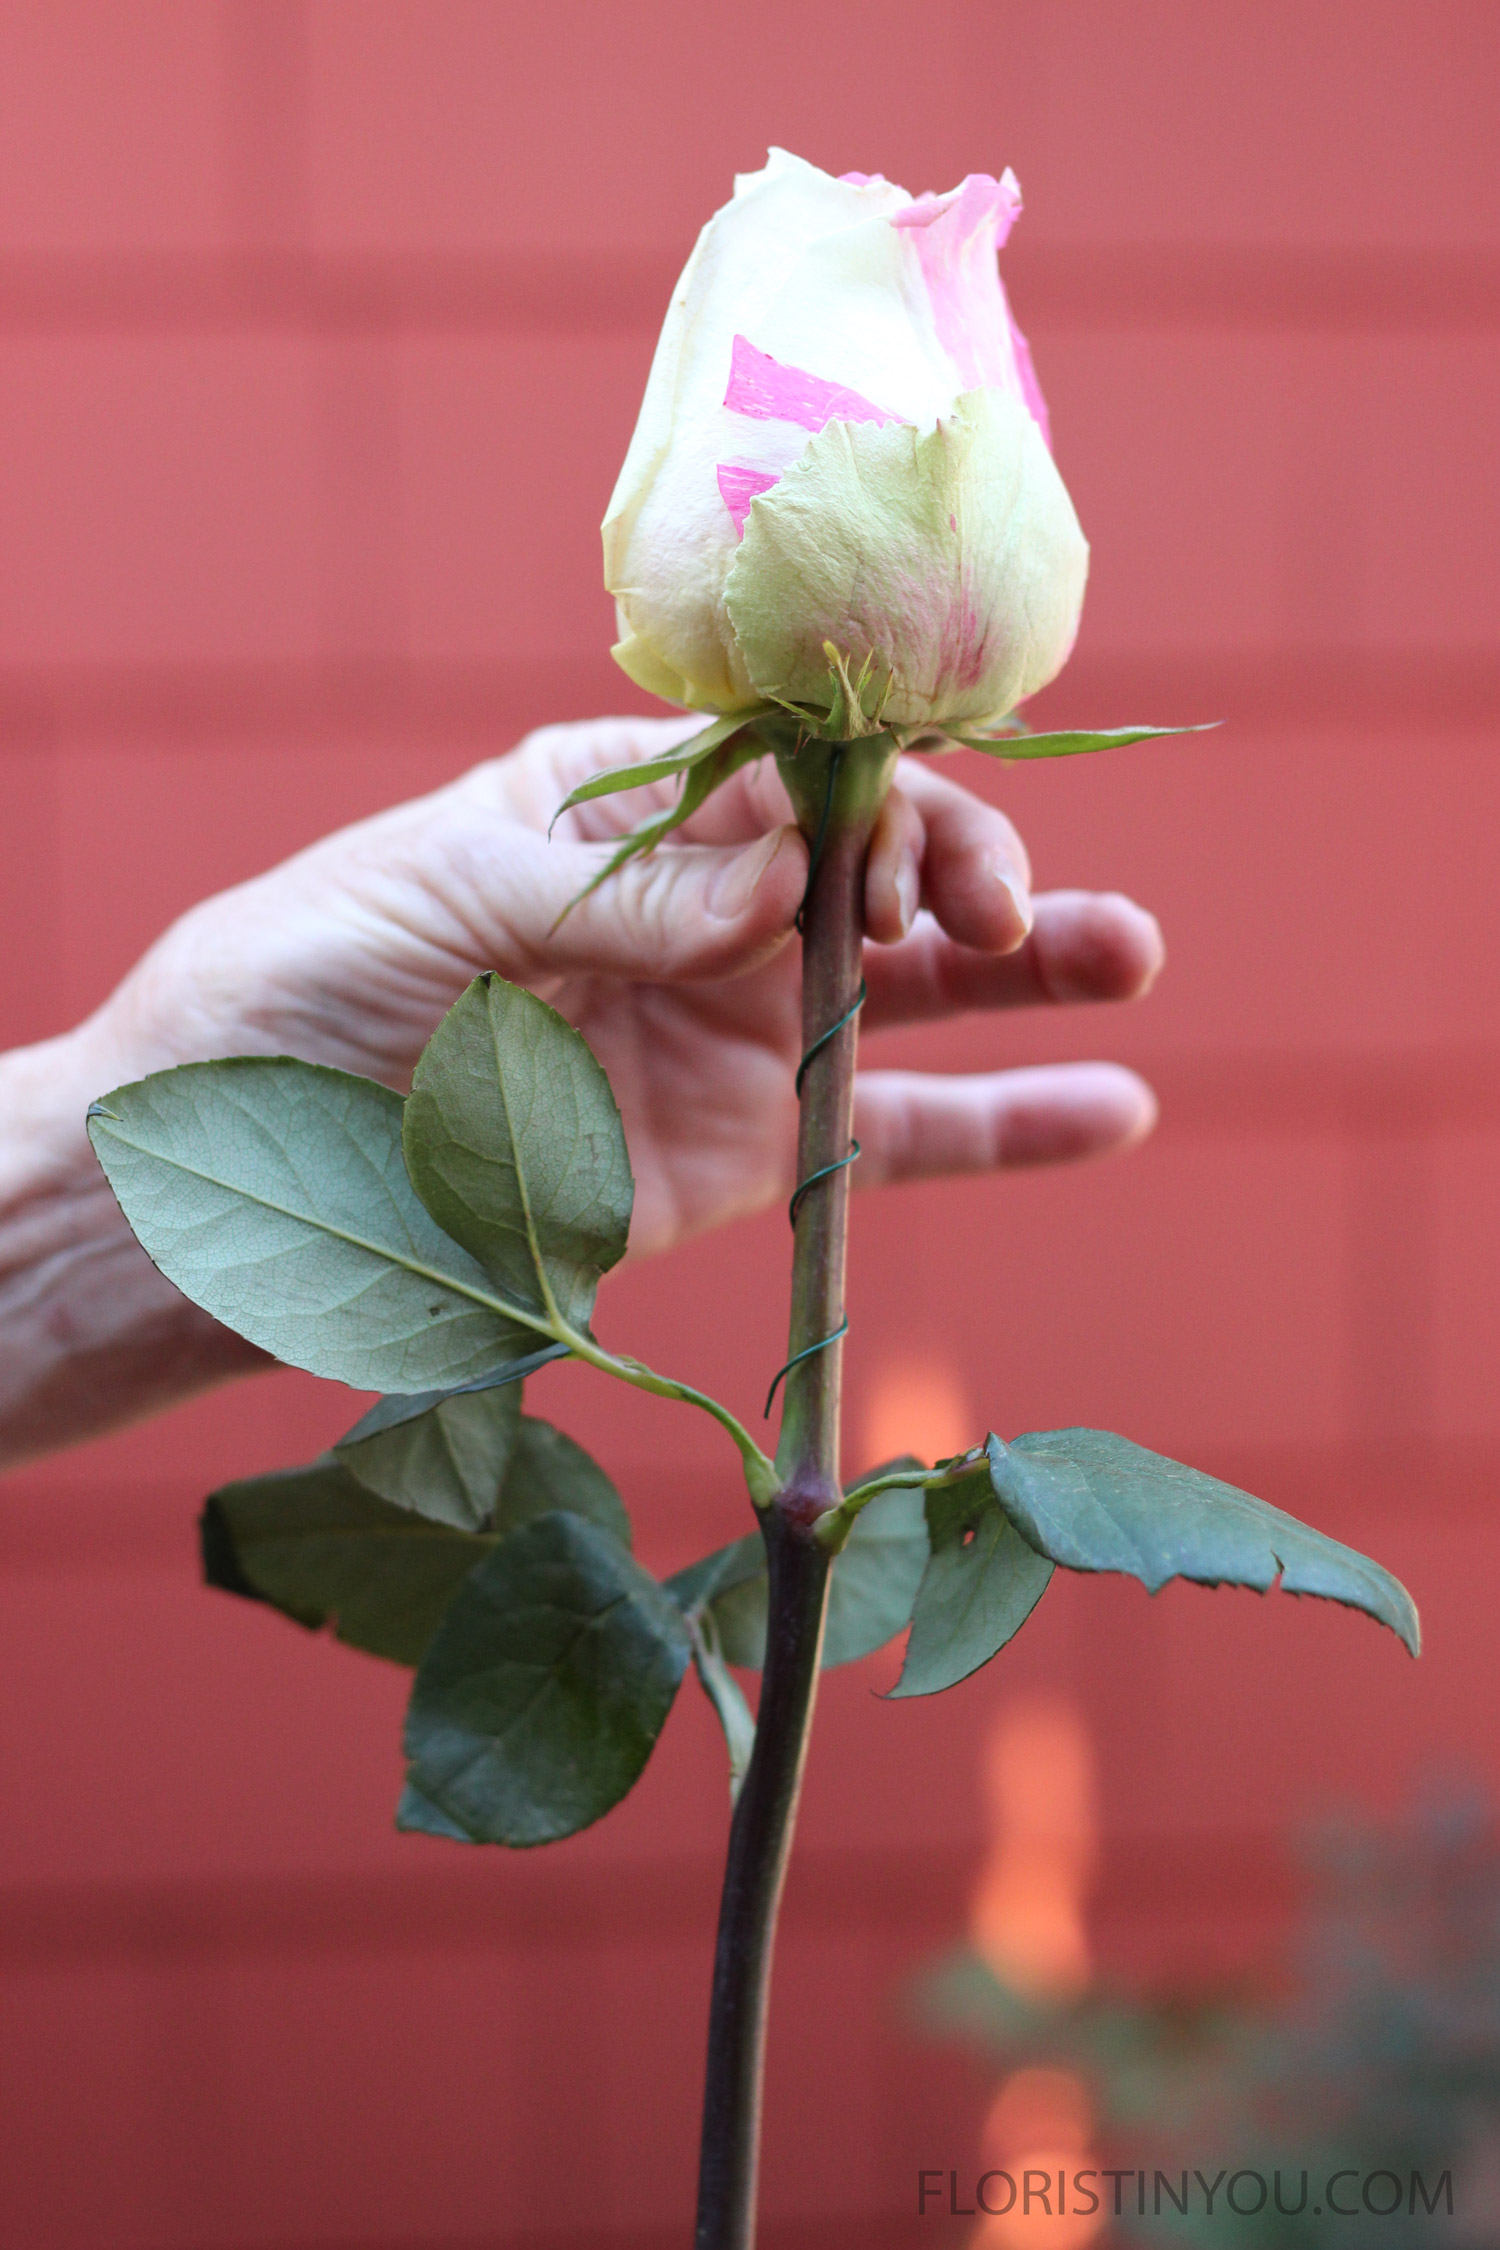 Itwill look like this. Don't wire all the way down the stem, because wires get tangled in the vase.